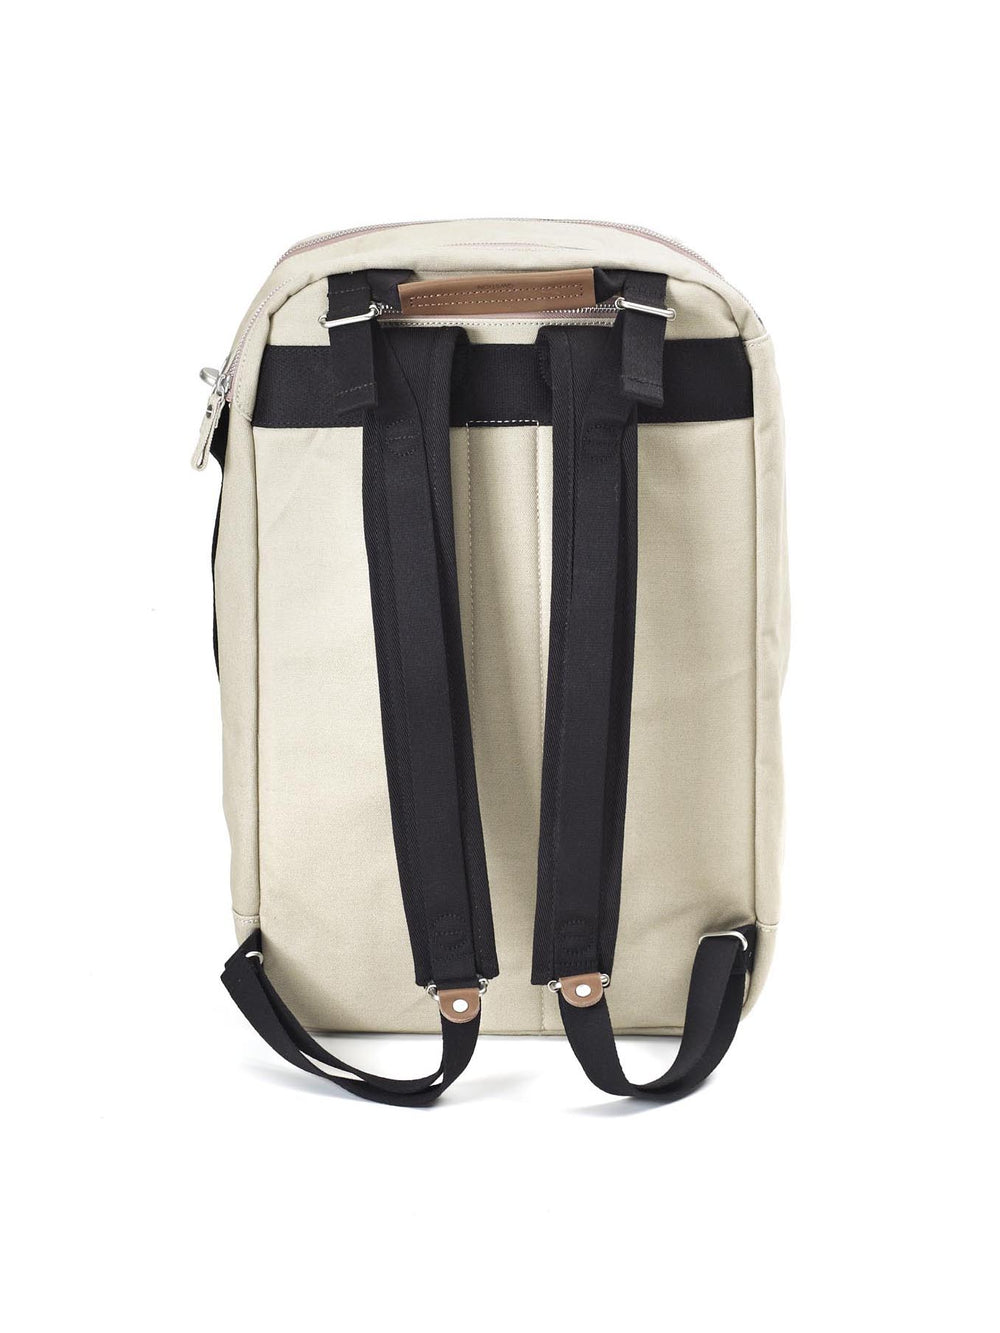 The padded straps of Qwstion Backpack for a confortable carry